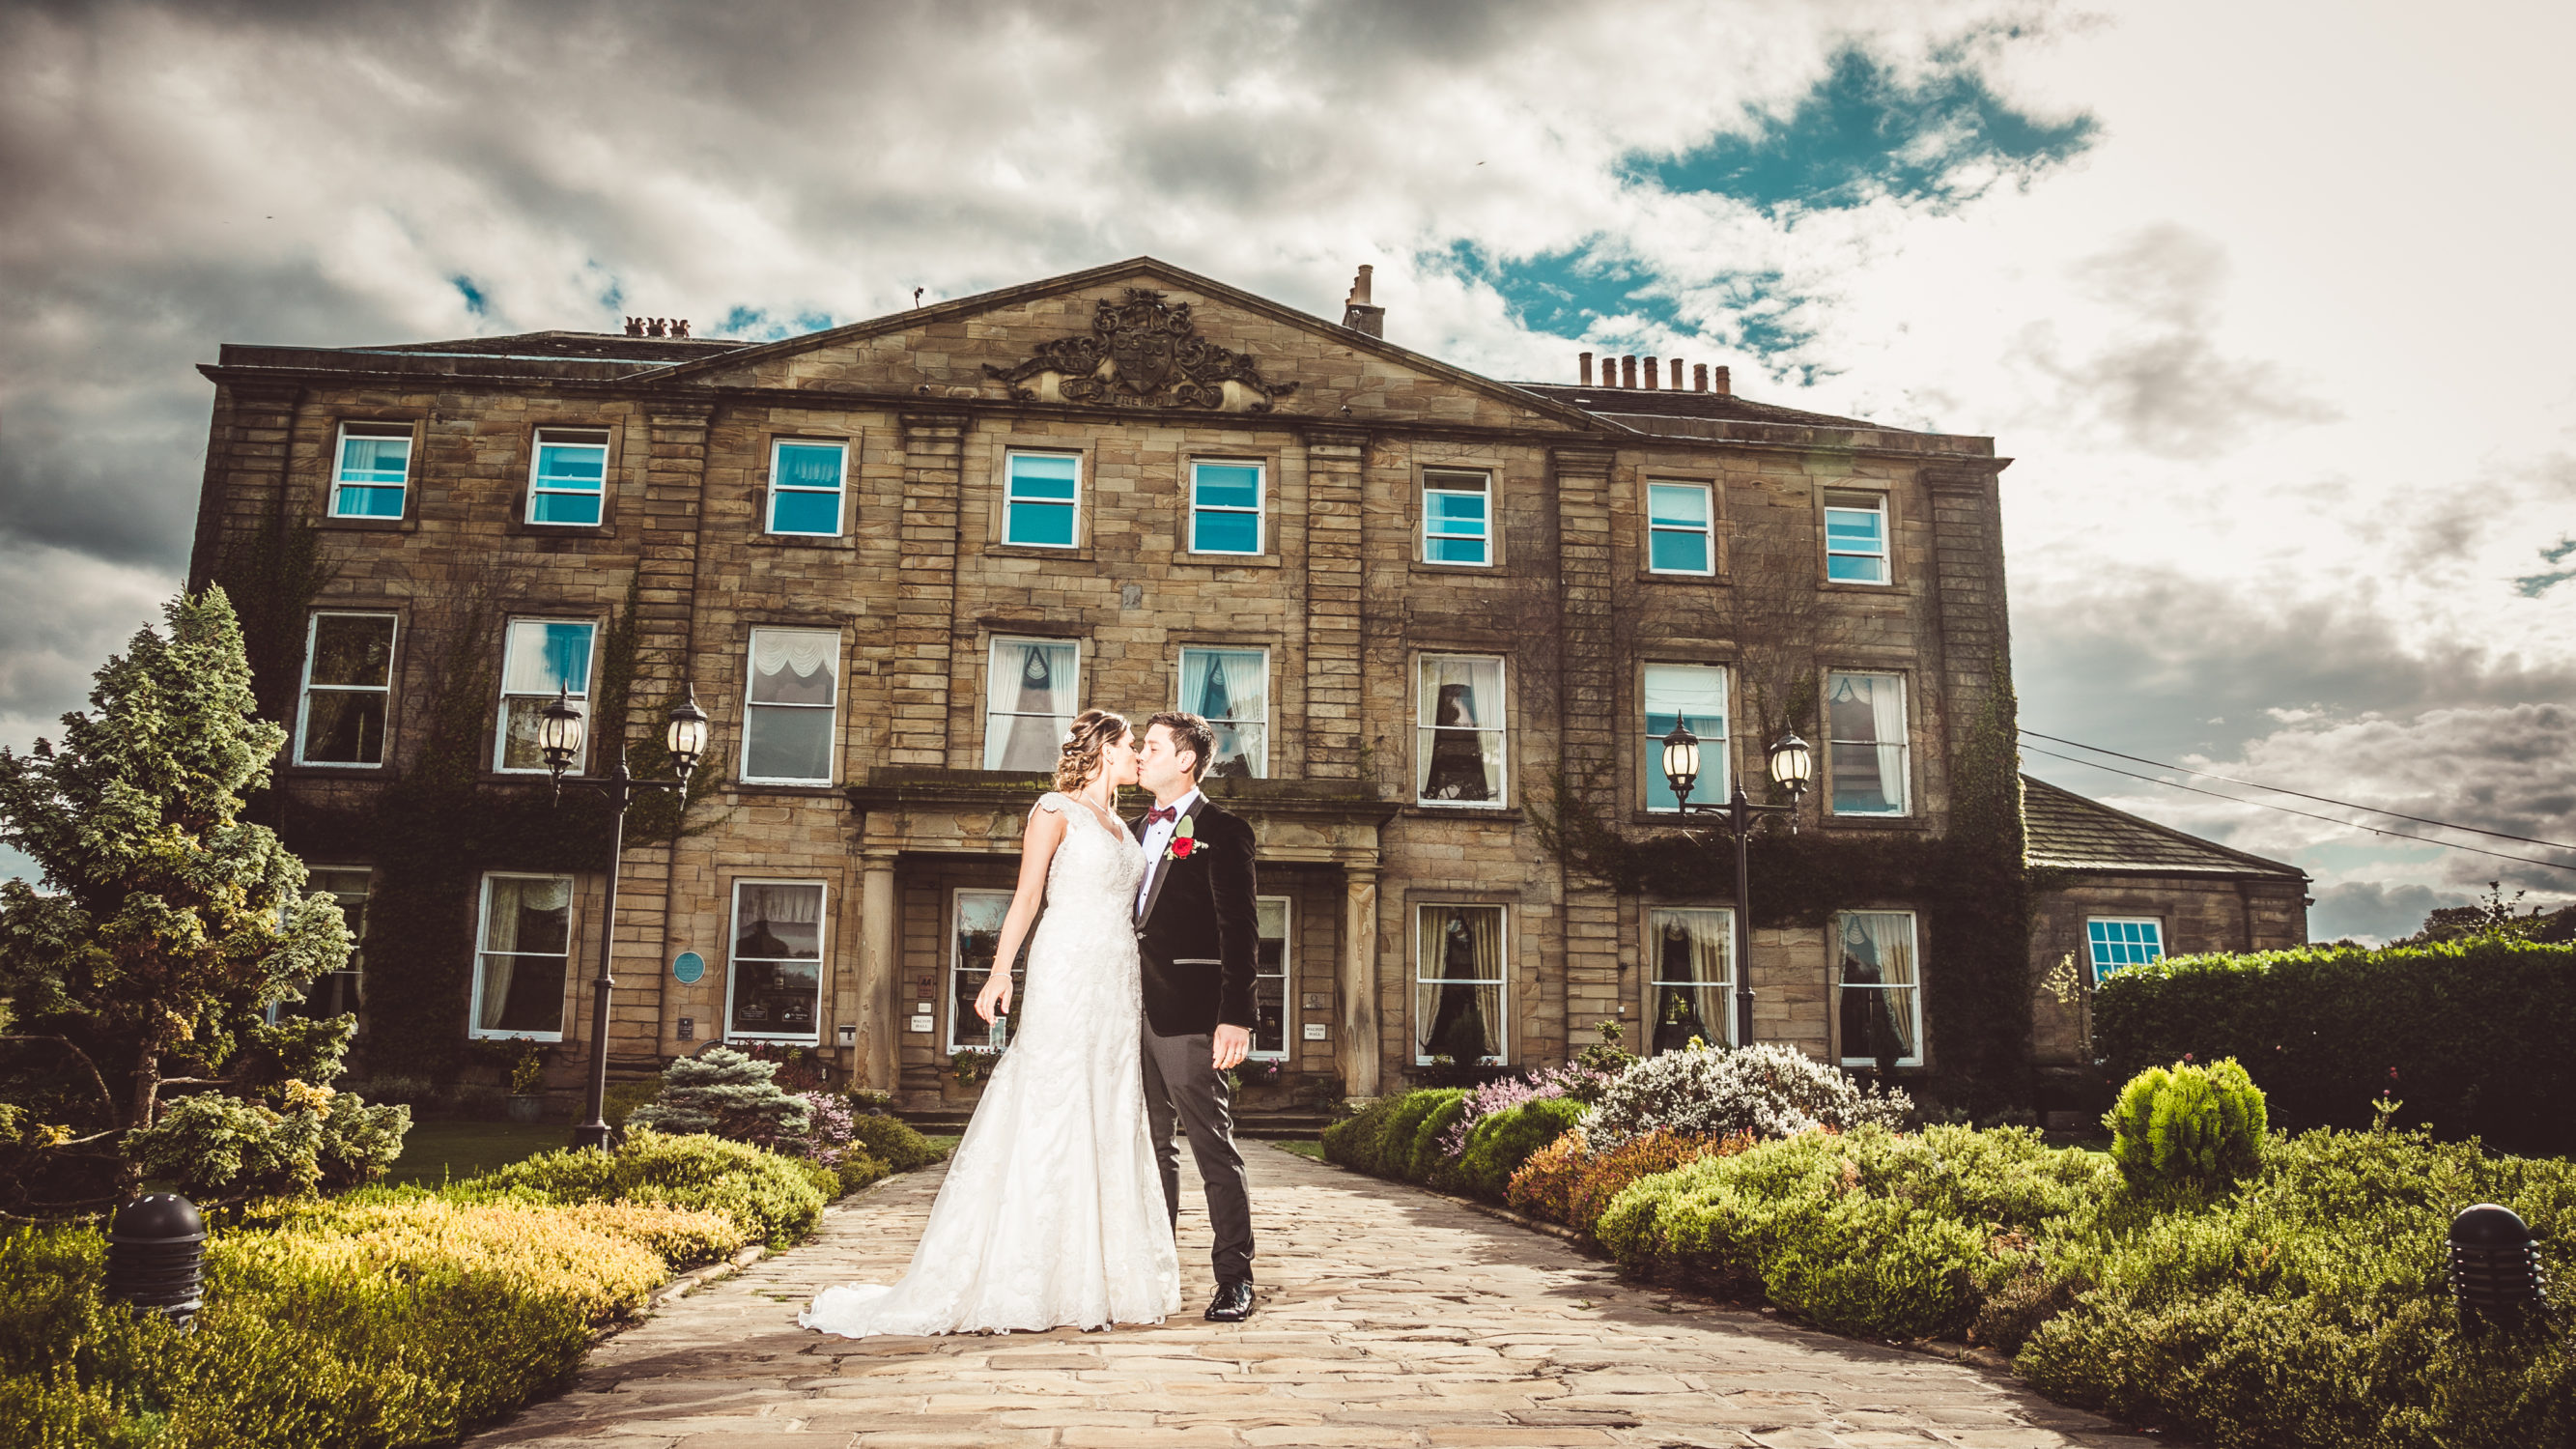 ©Liam Oakes Wedding Photography